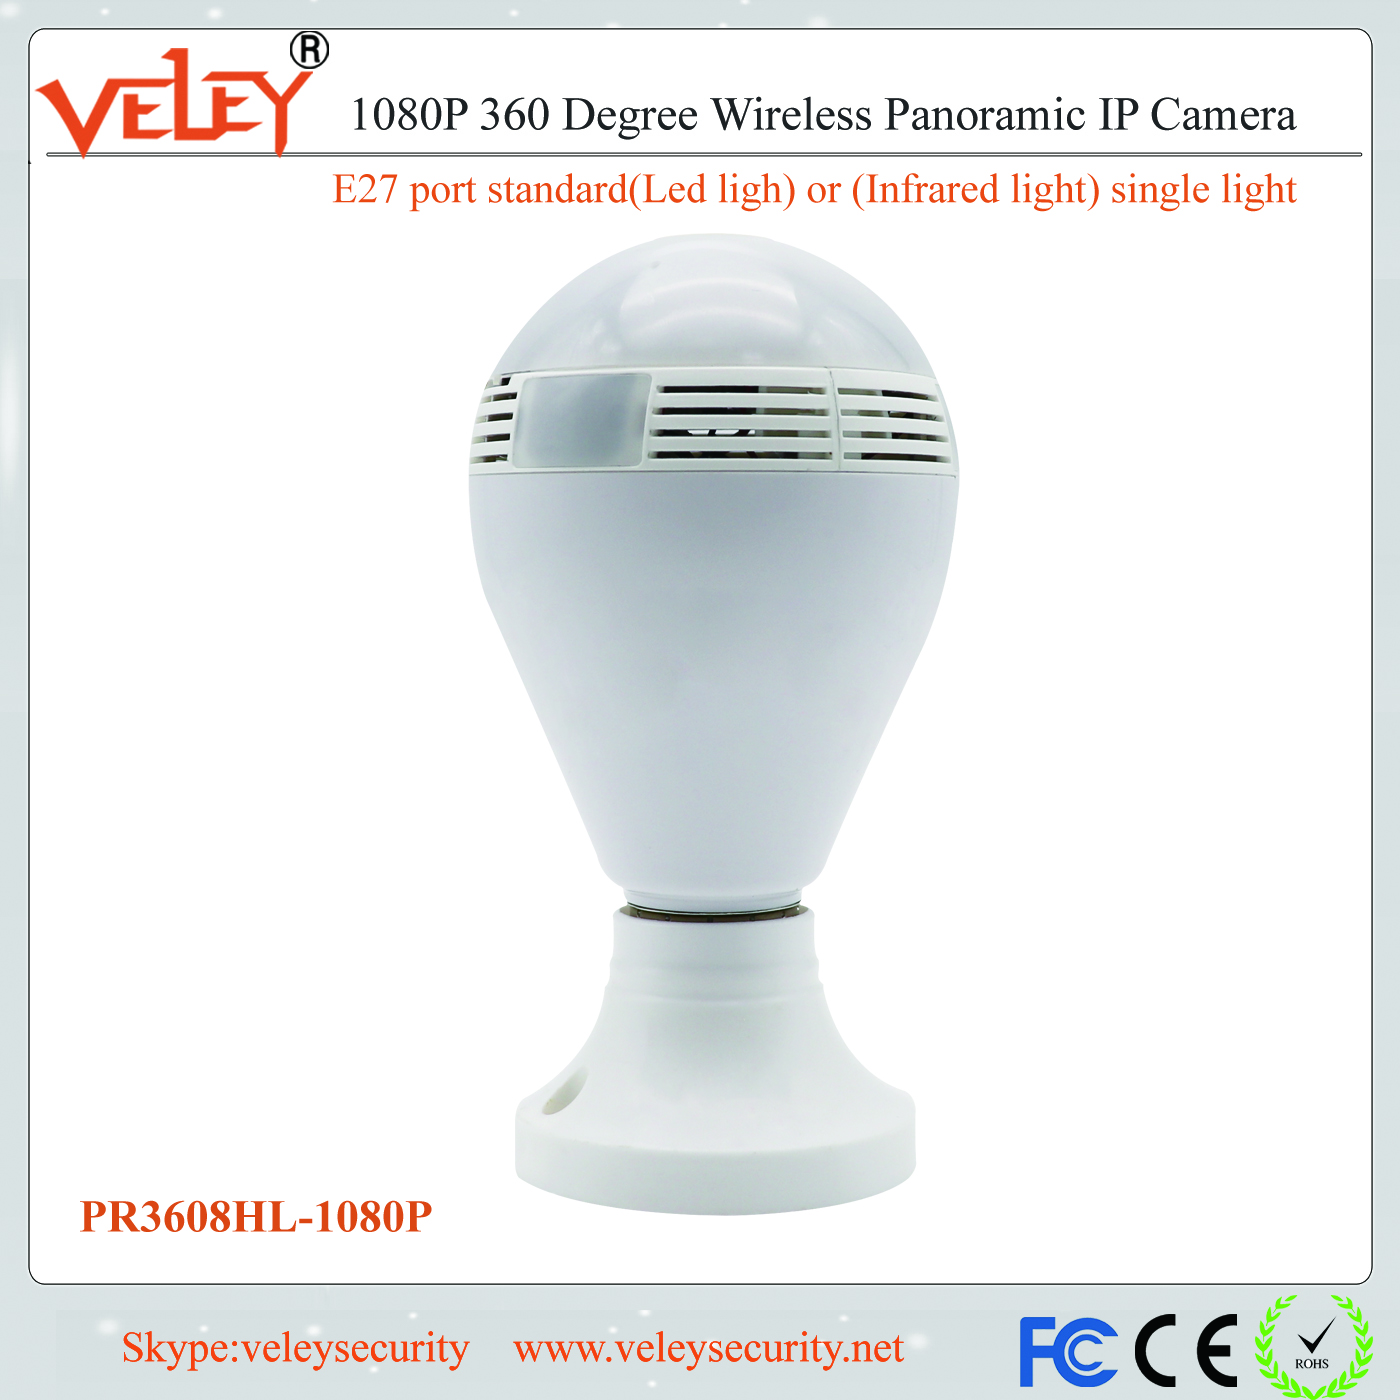 WiFi IP Cameras-Veley Security Limited